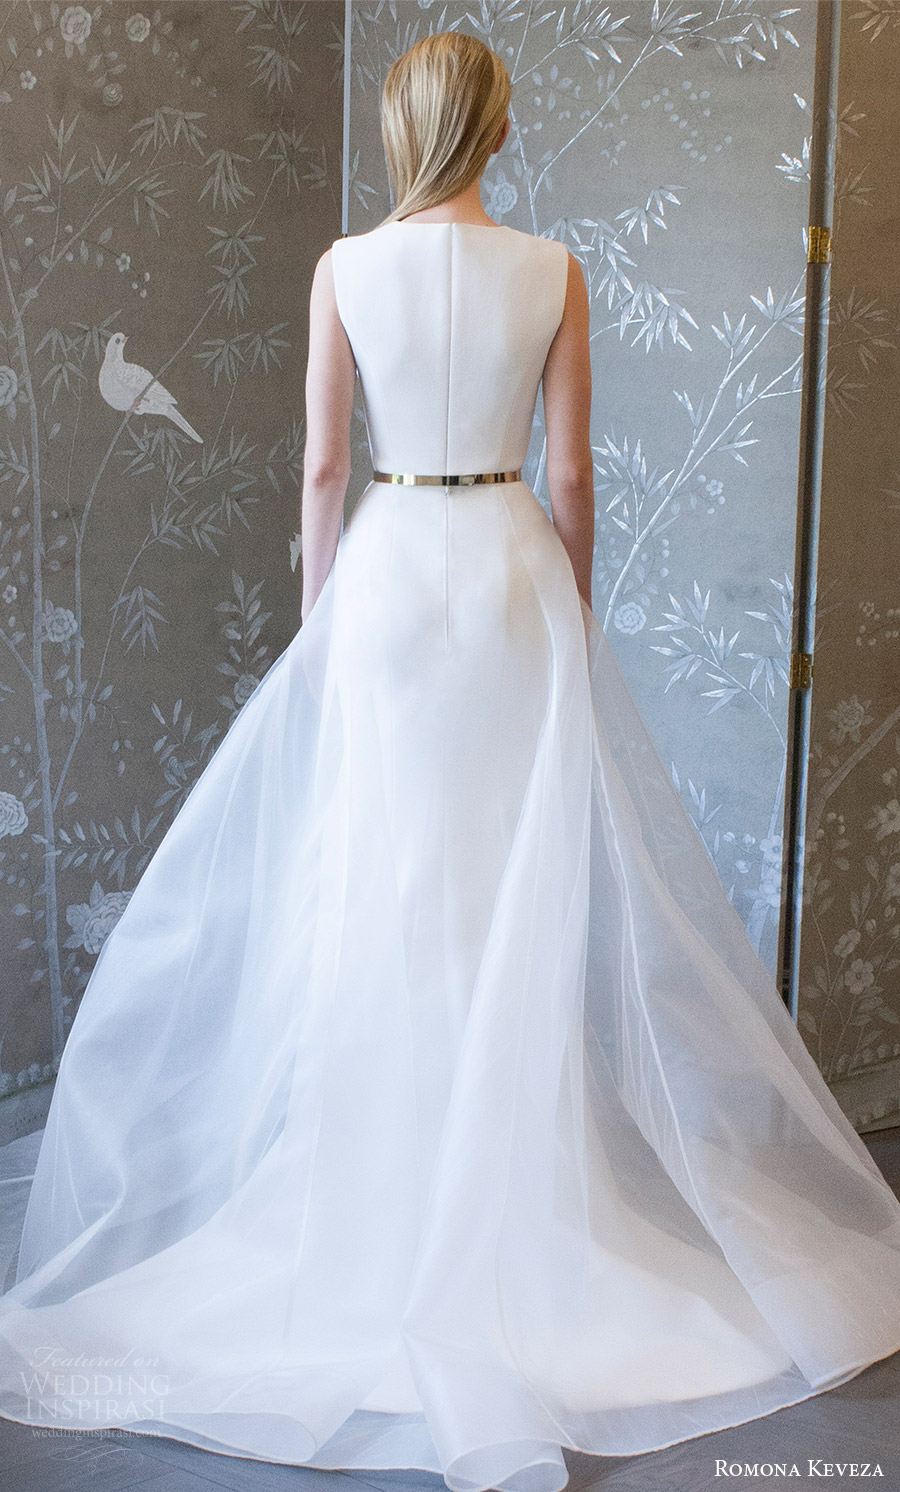 romona keveza spring 2018 bridal sleeveless jewel neck sheath trumpet wedding dress sheer overskirt belt (rk8400) bv clean elegant modern sweep train